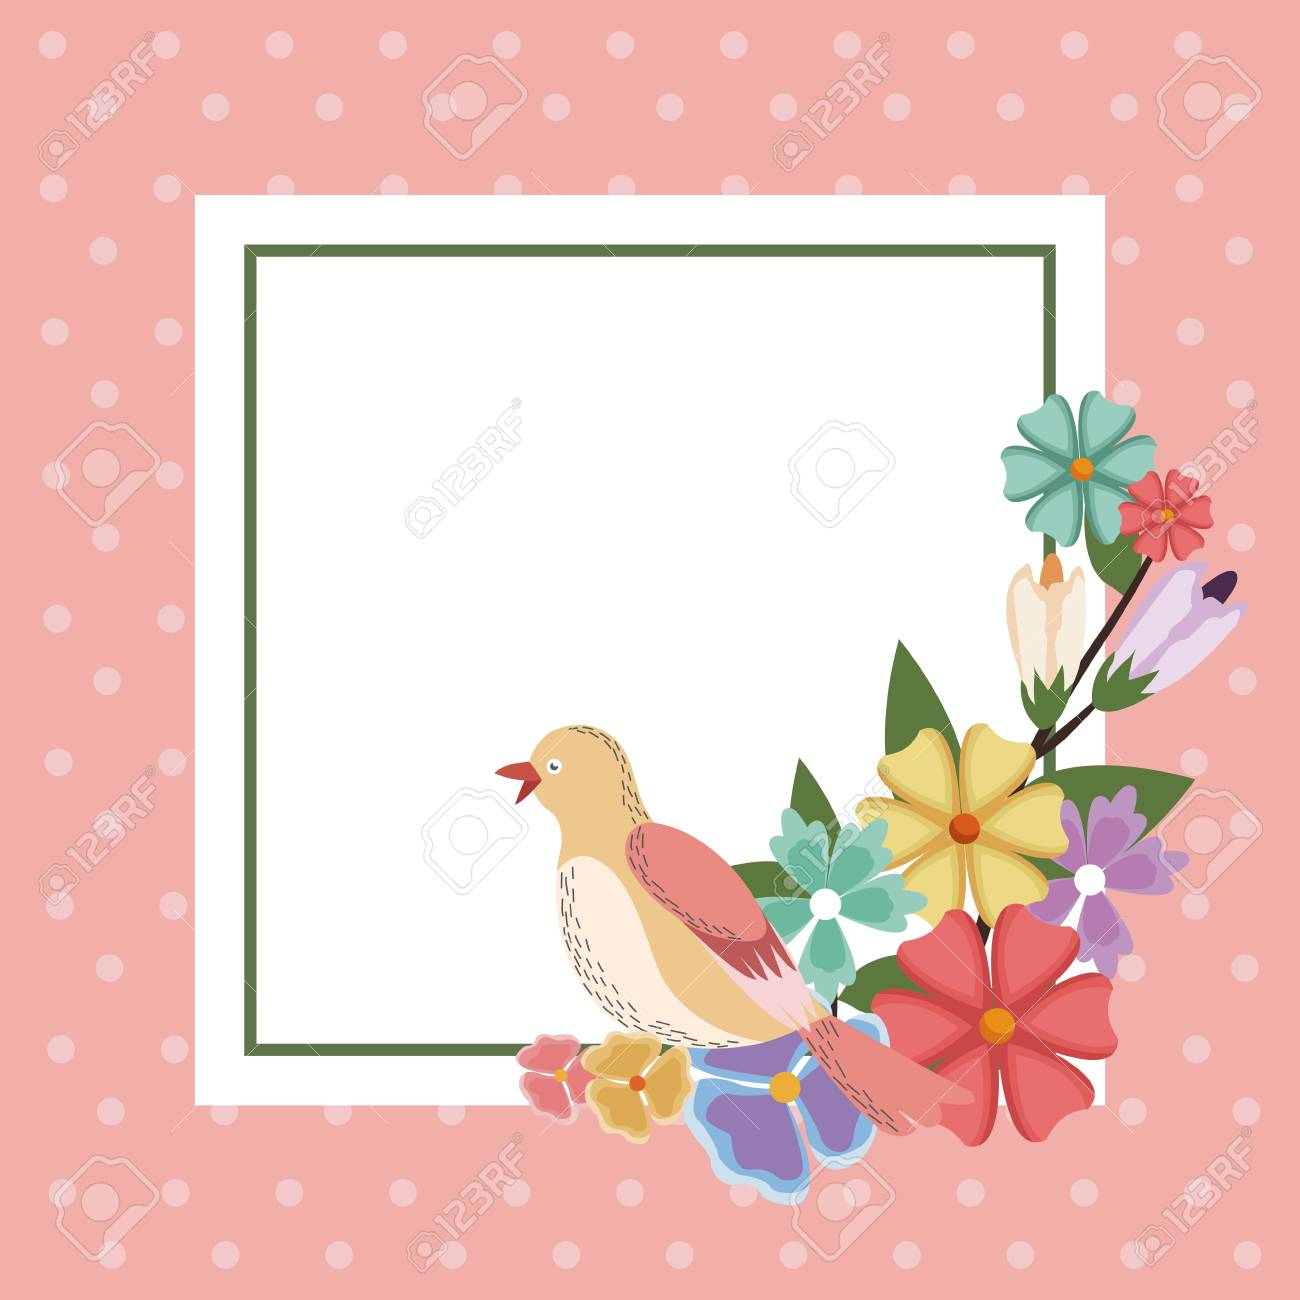 Spring Card Bird Flower Frame Decoration Invitation Template within dimensions 1300 X 1300